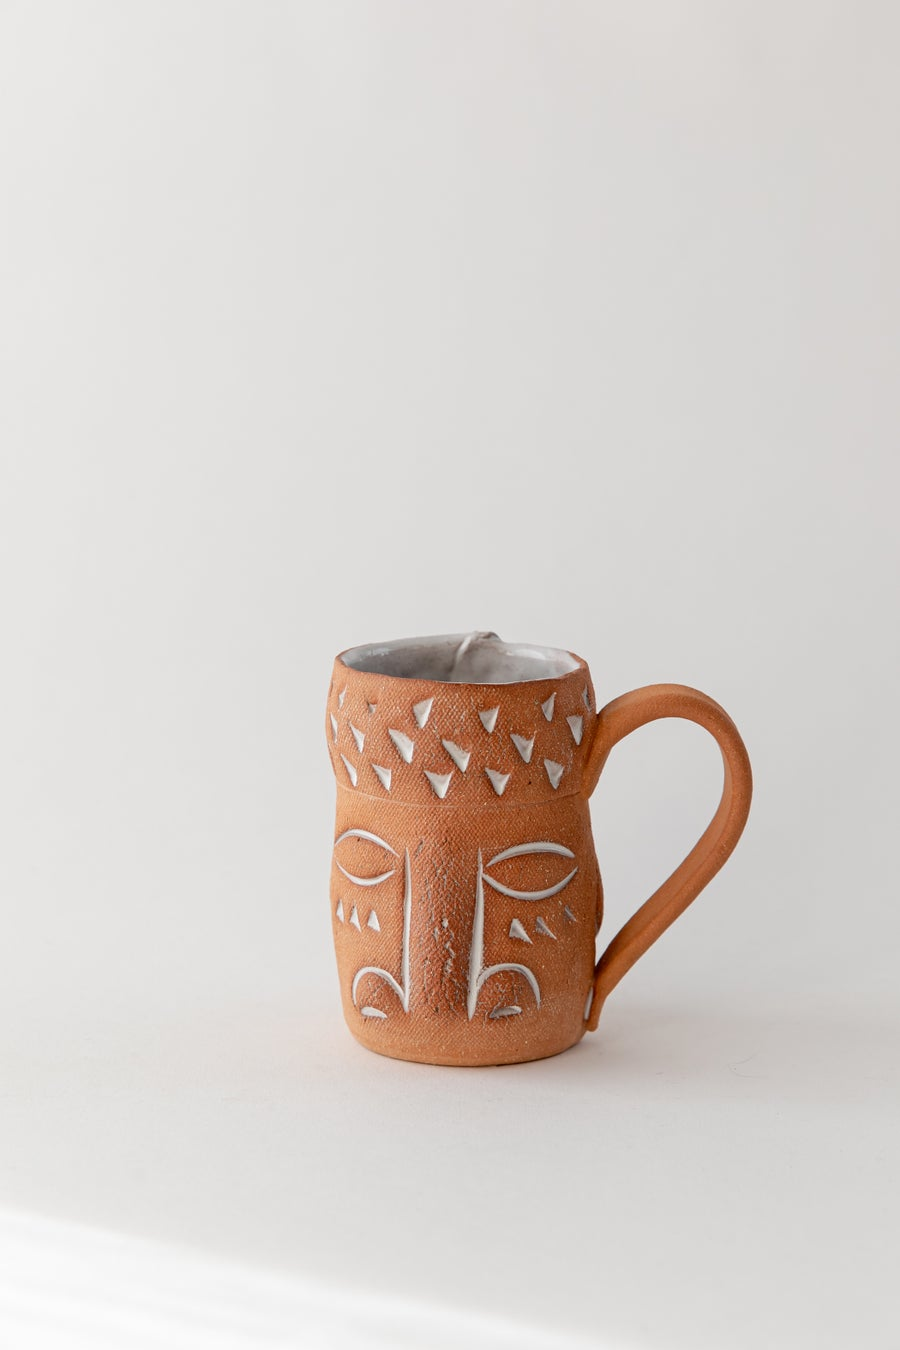 Image of Large Tiki Mug - Nude Man no.2